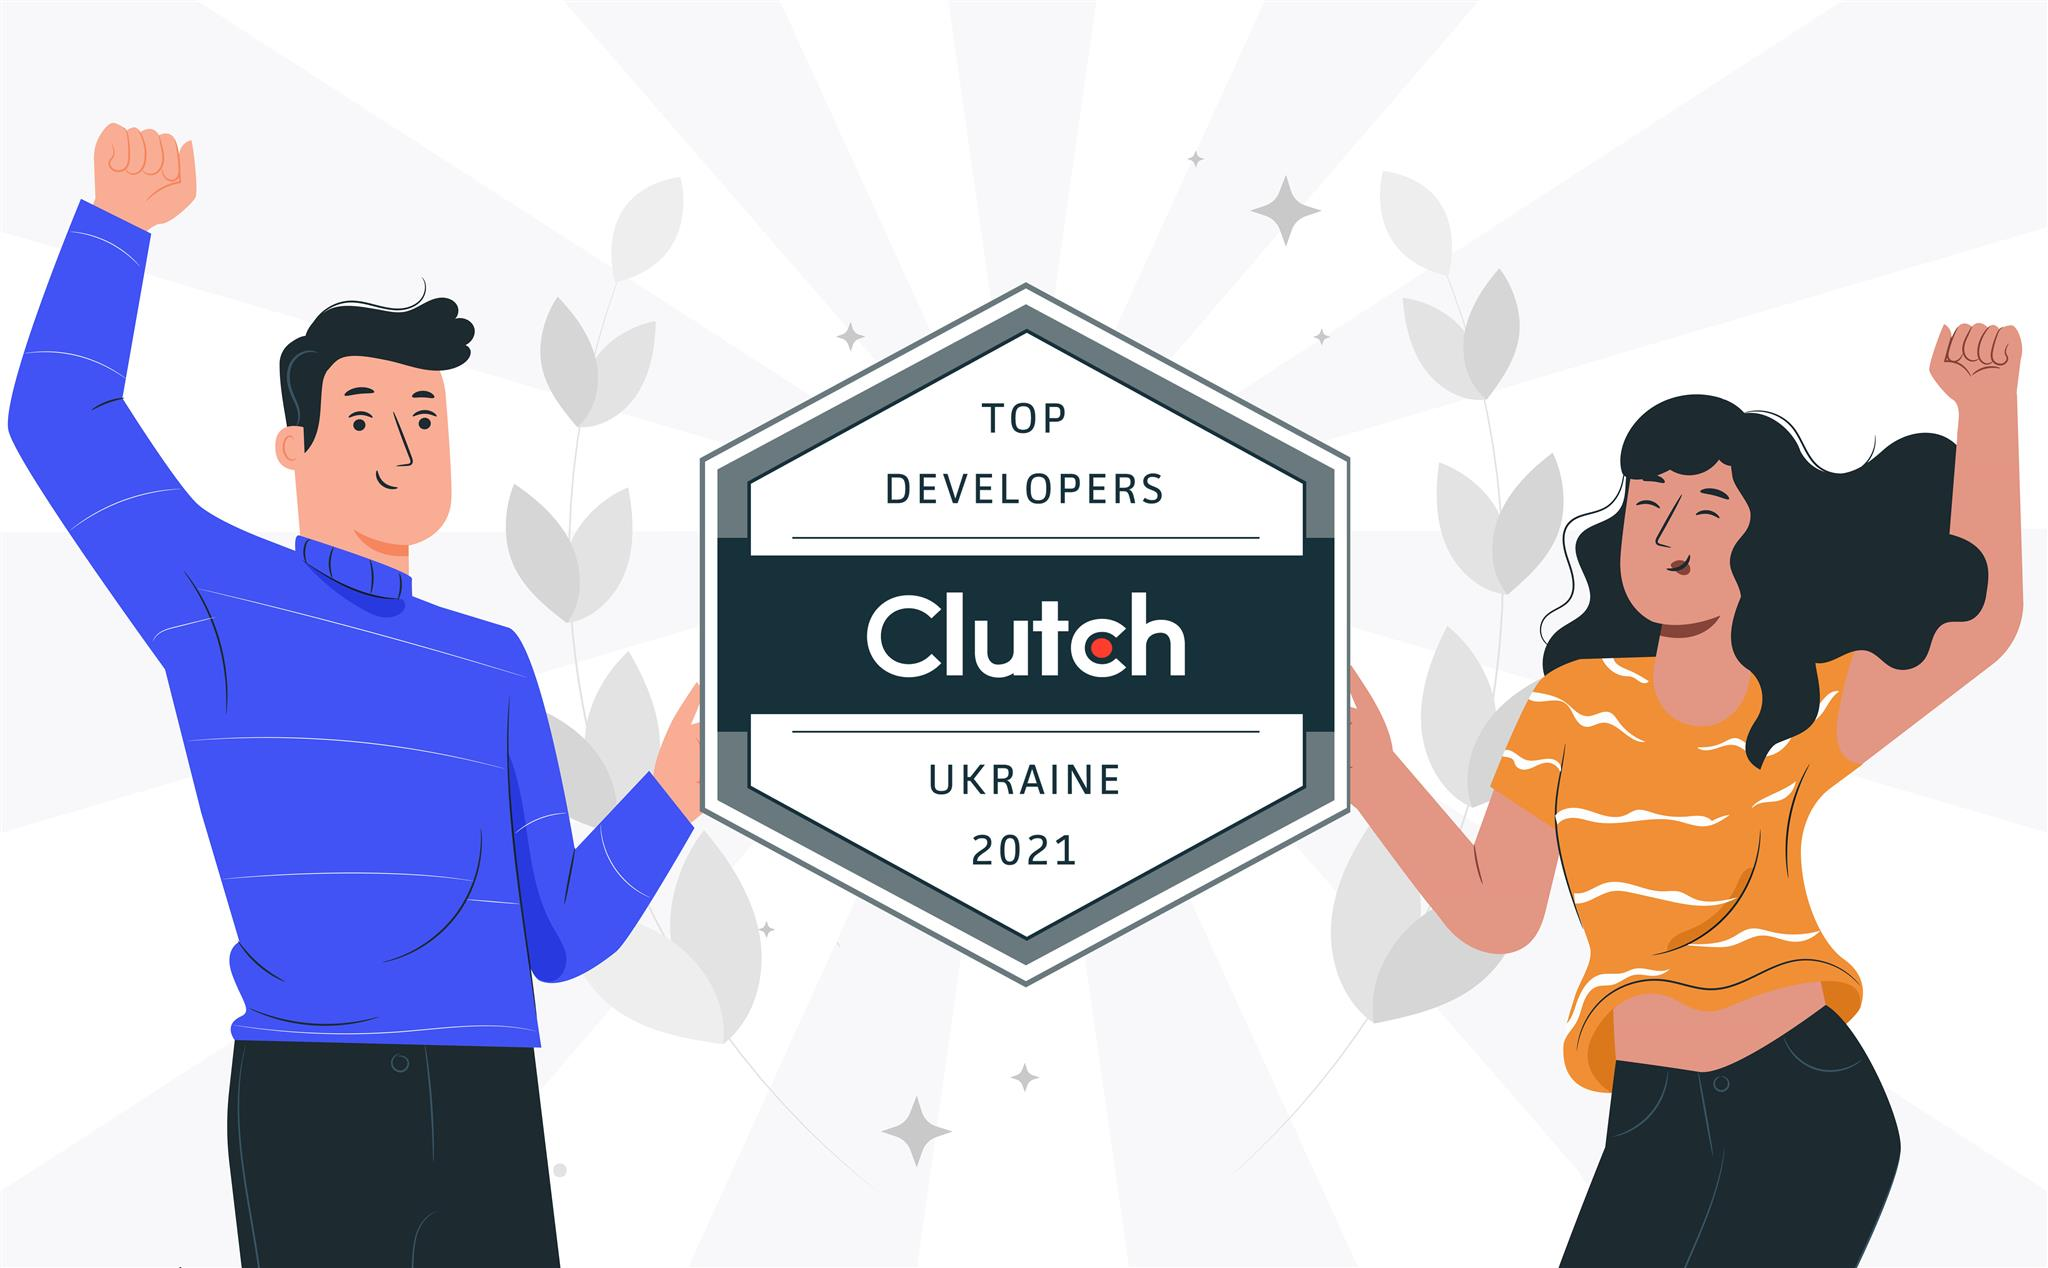 Again, Gera-IT is among Top Web Developers